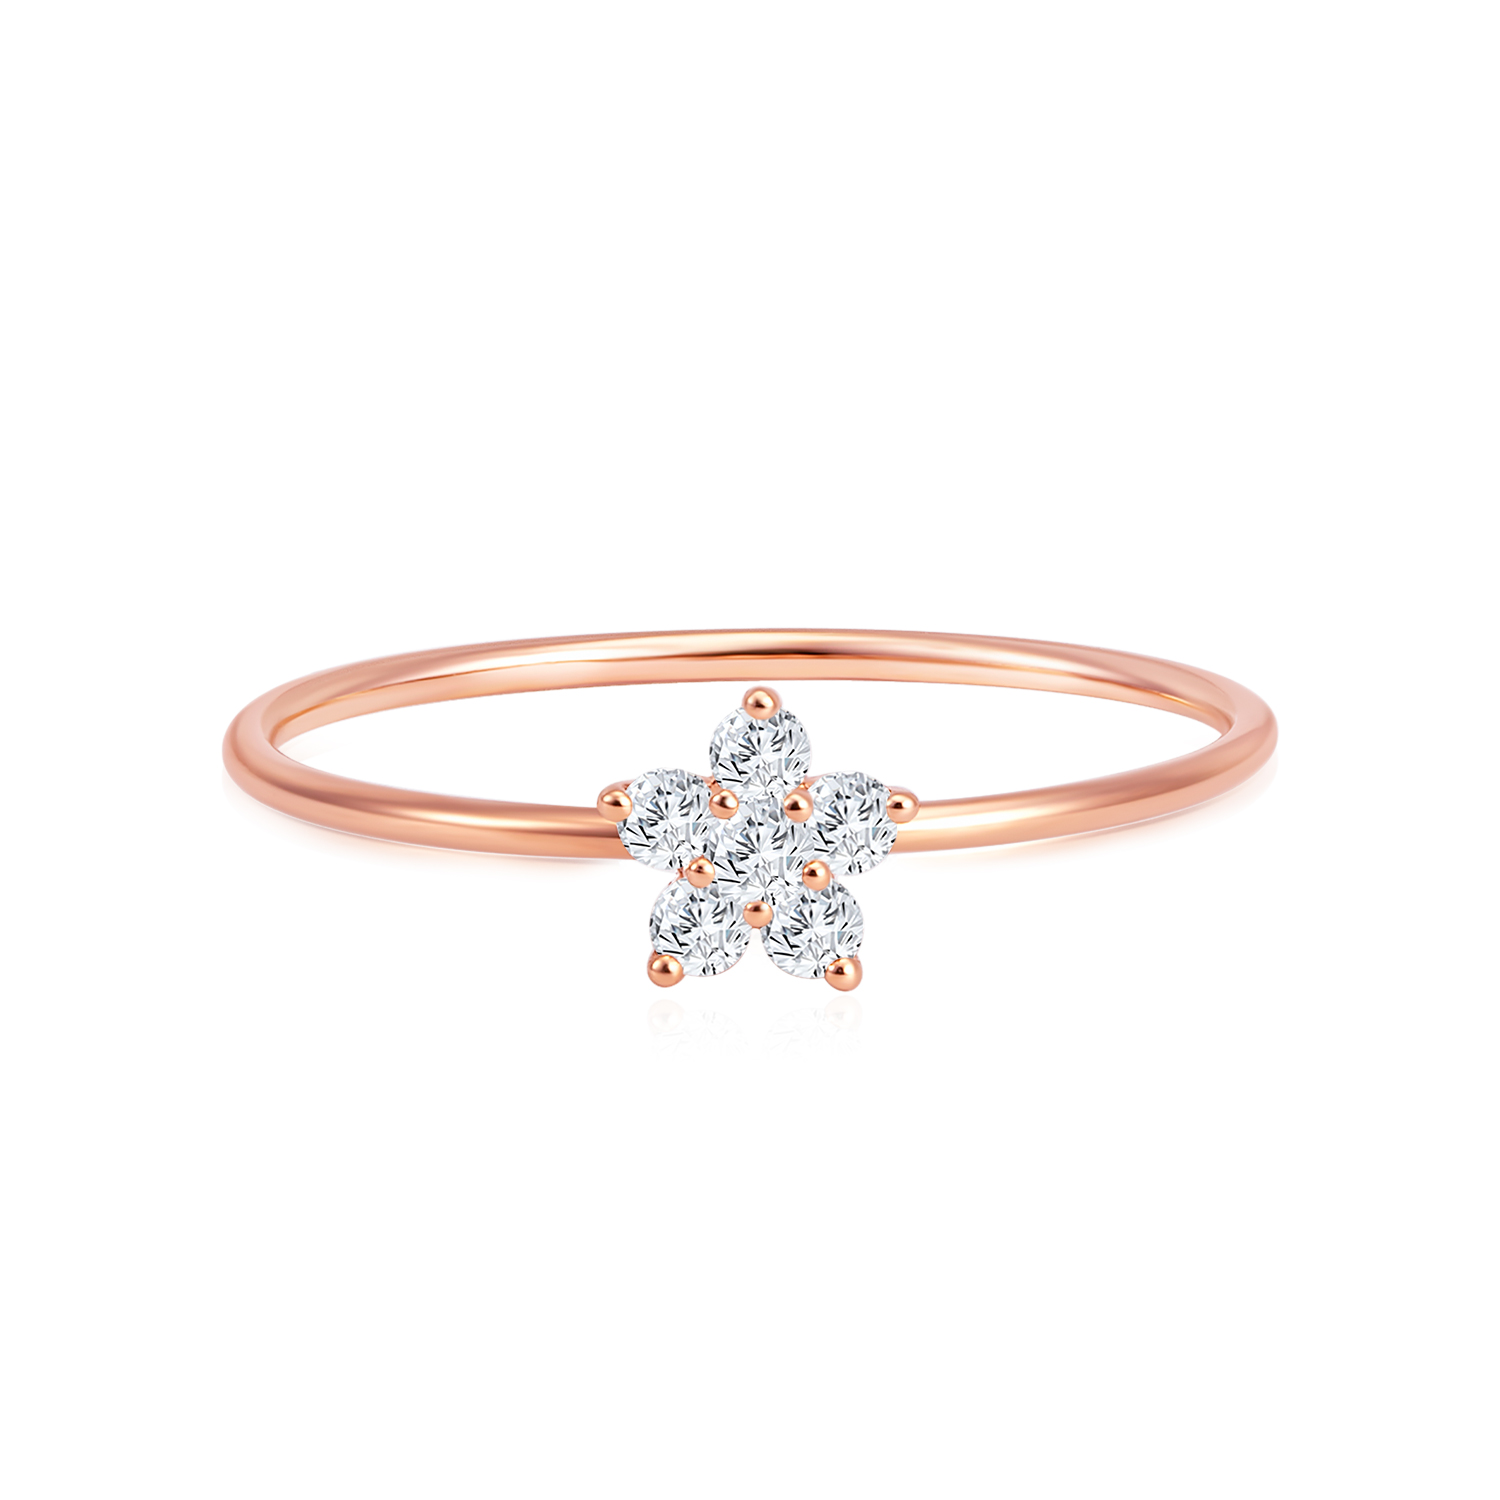 Starry Twinkle Rose Gold Diamond Ring